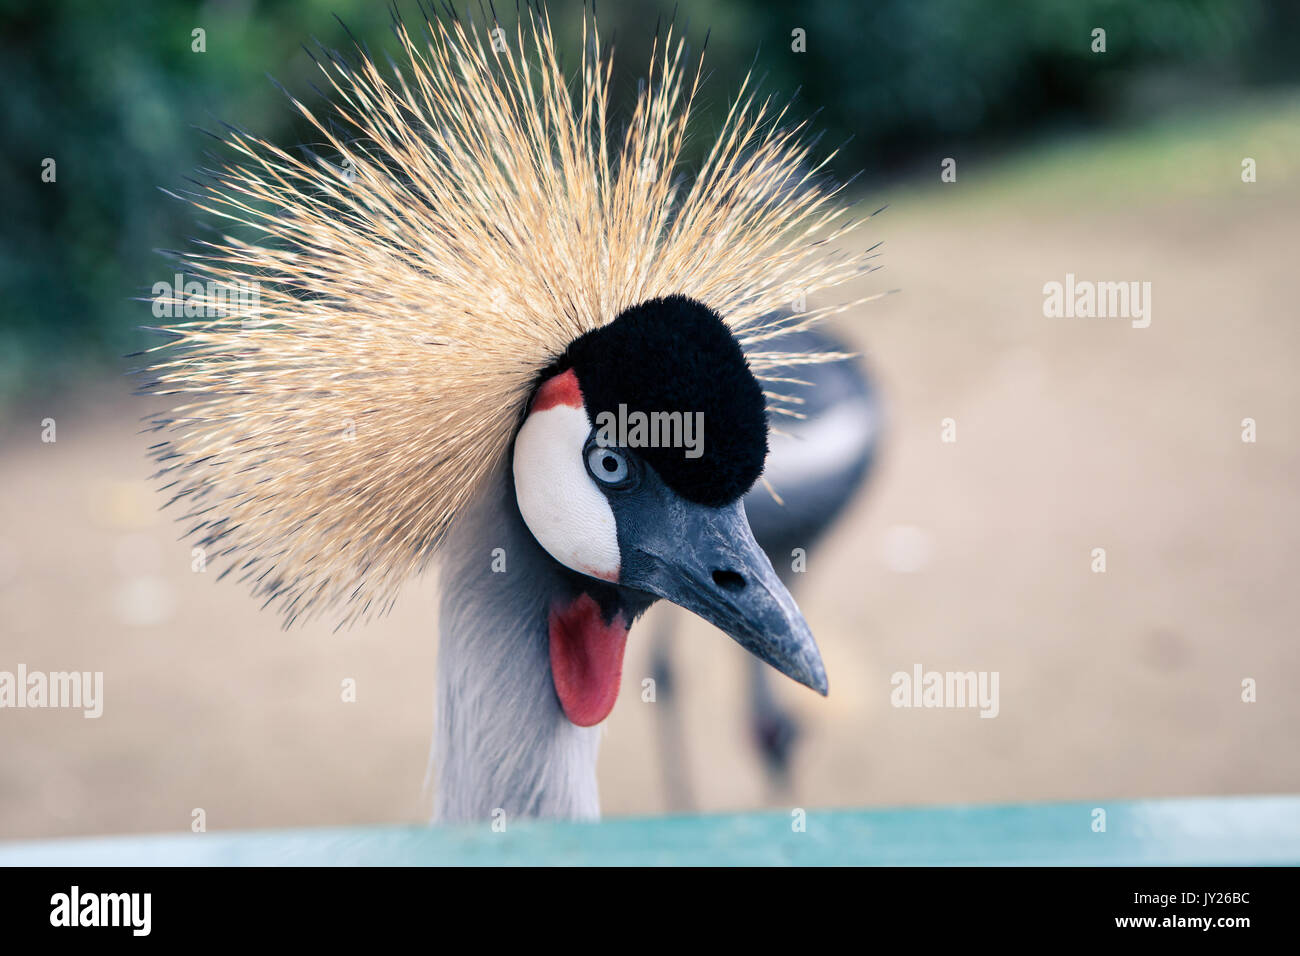 Beautiful crowned crane with blue eye and red wattle - Stock Image